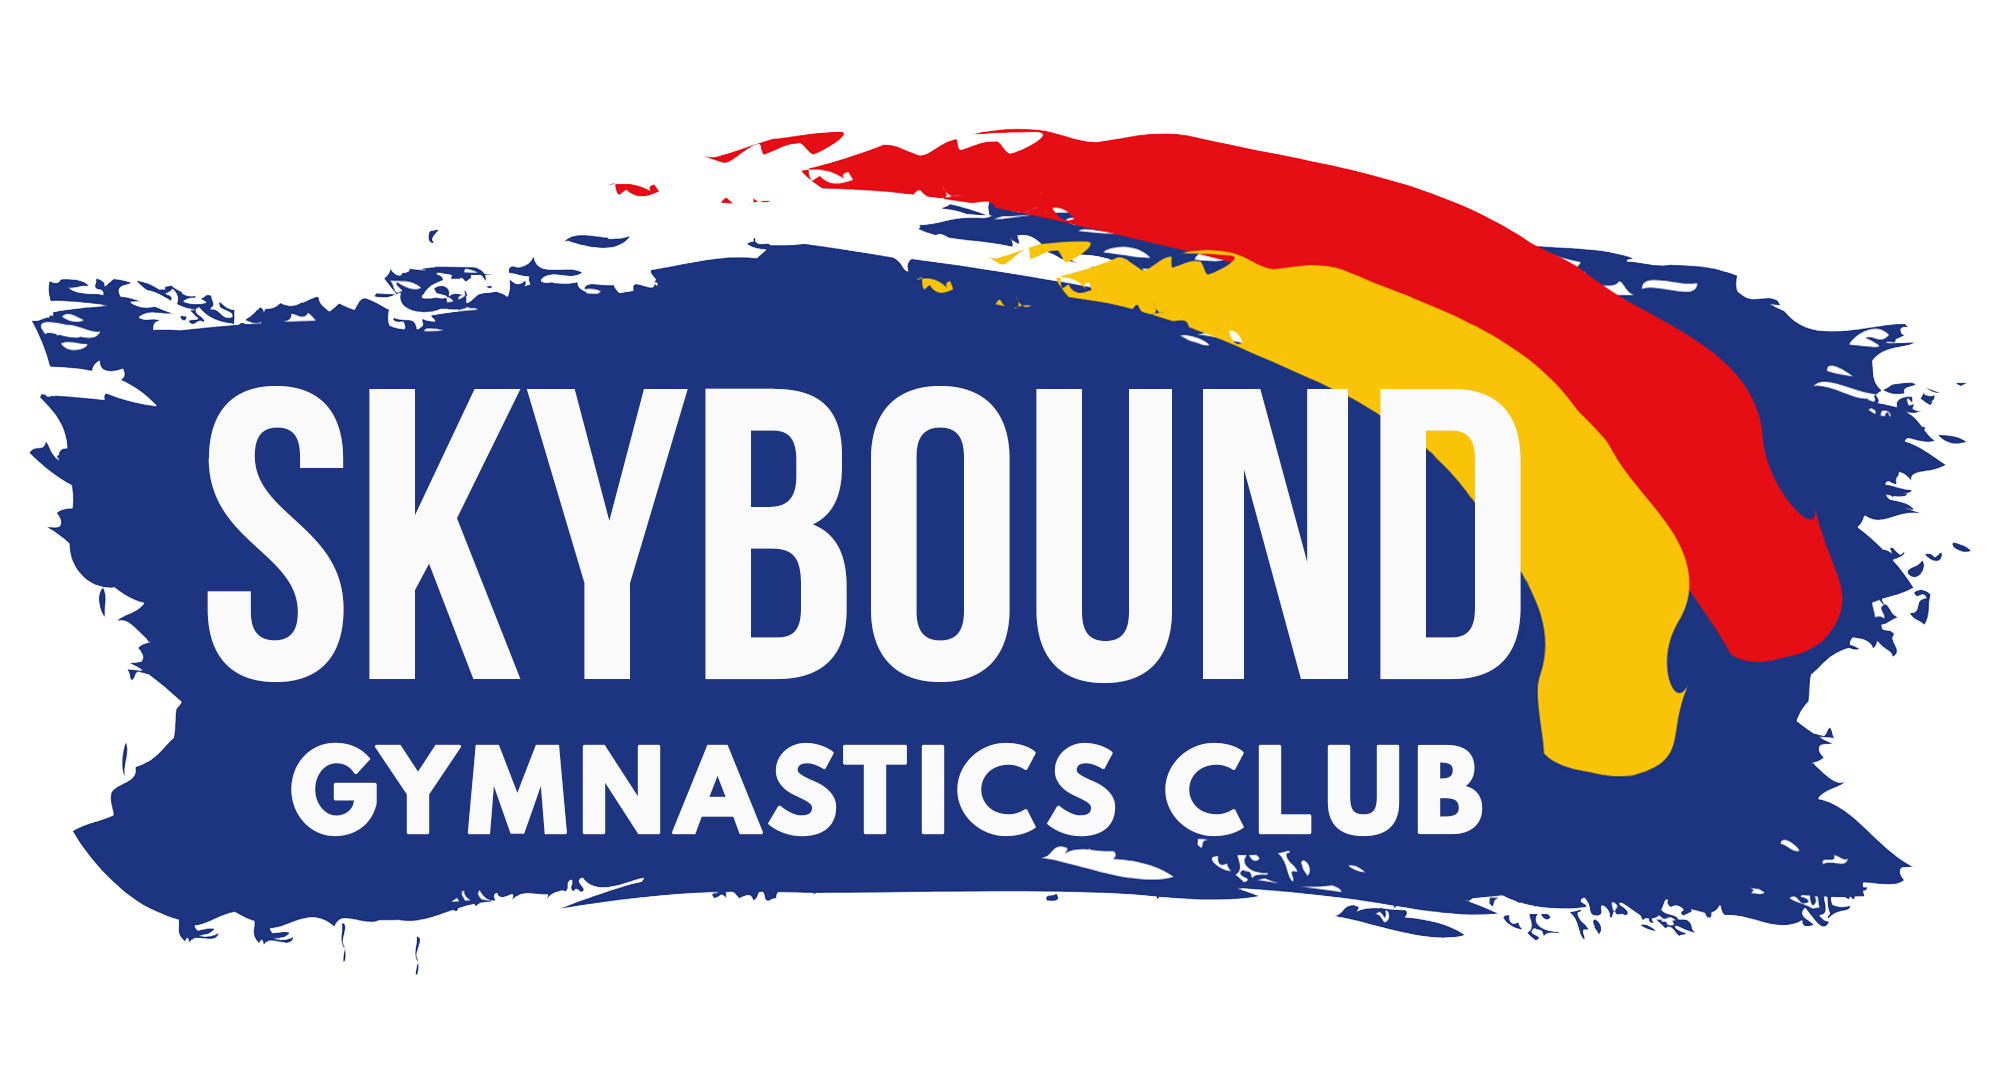 Skybound Gymnastics